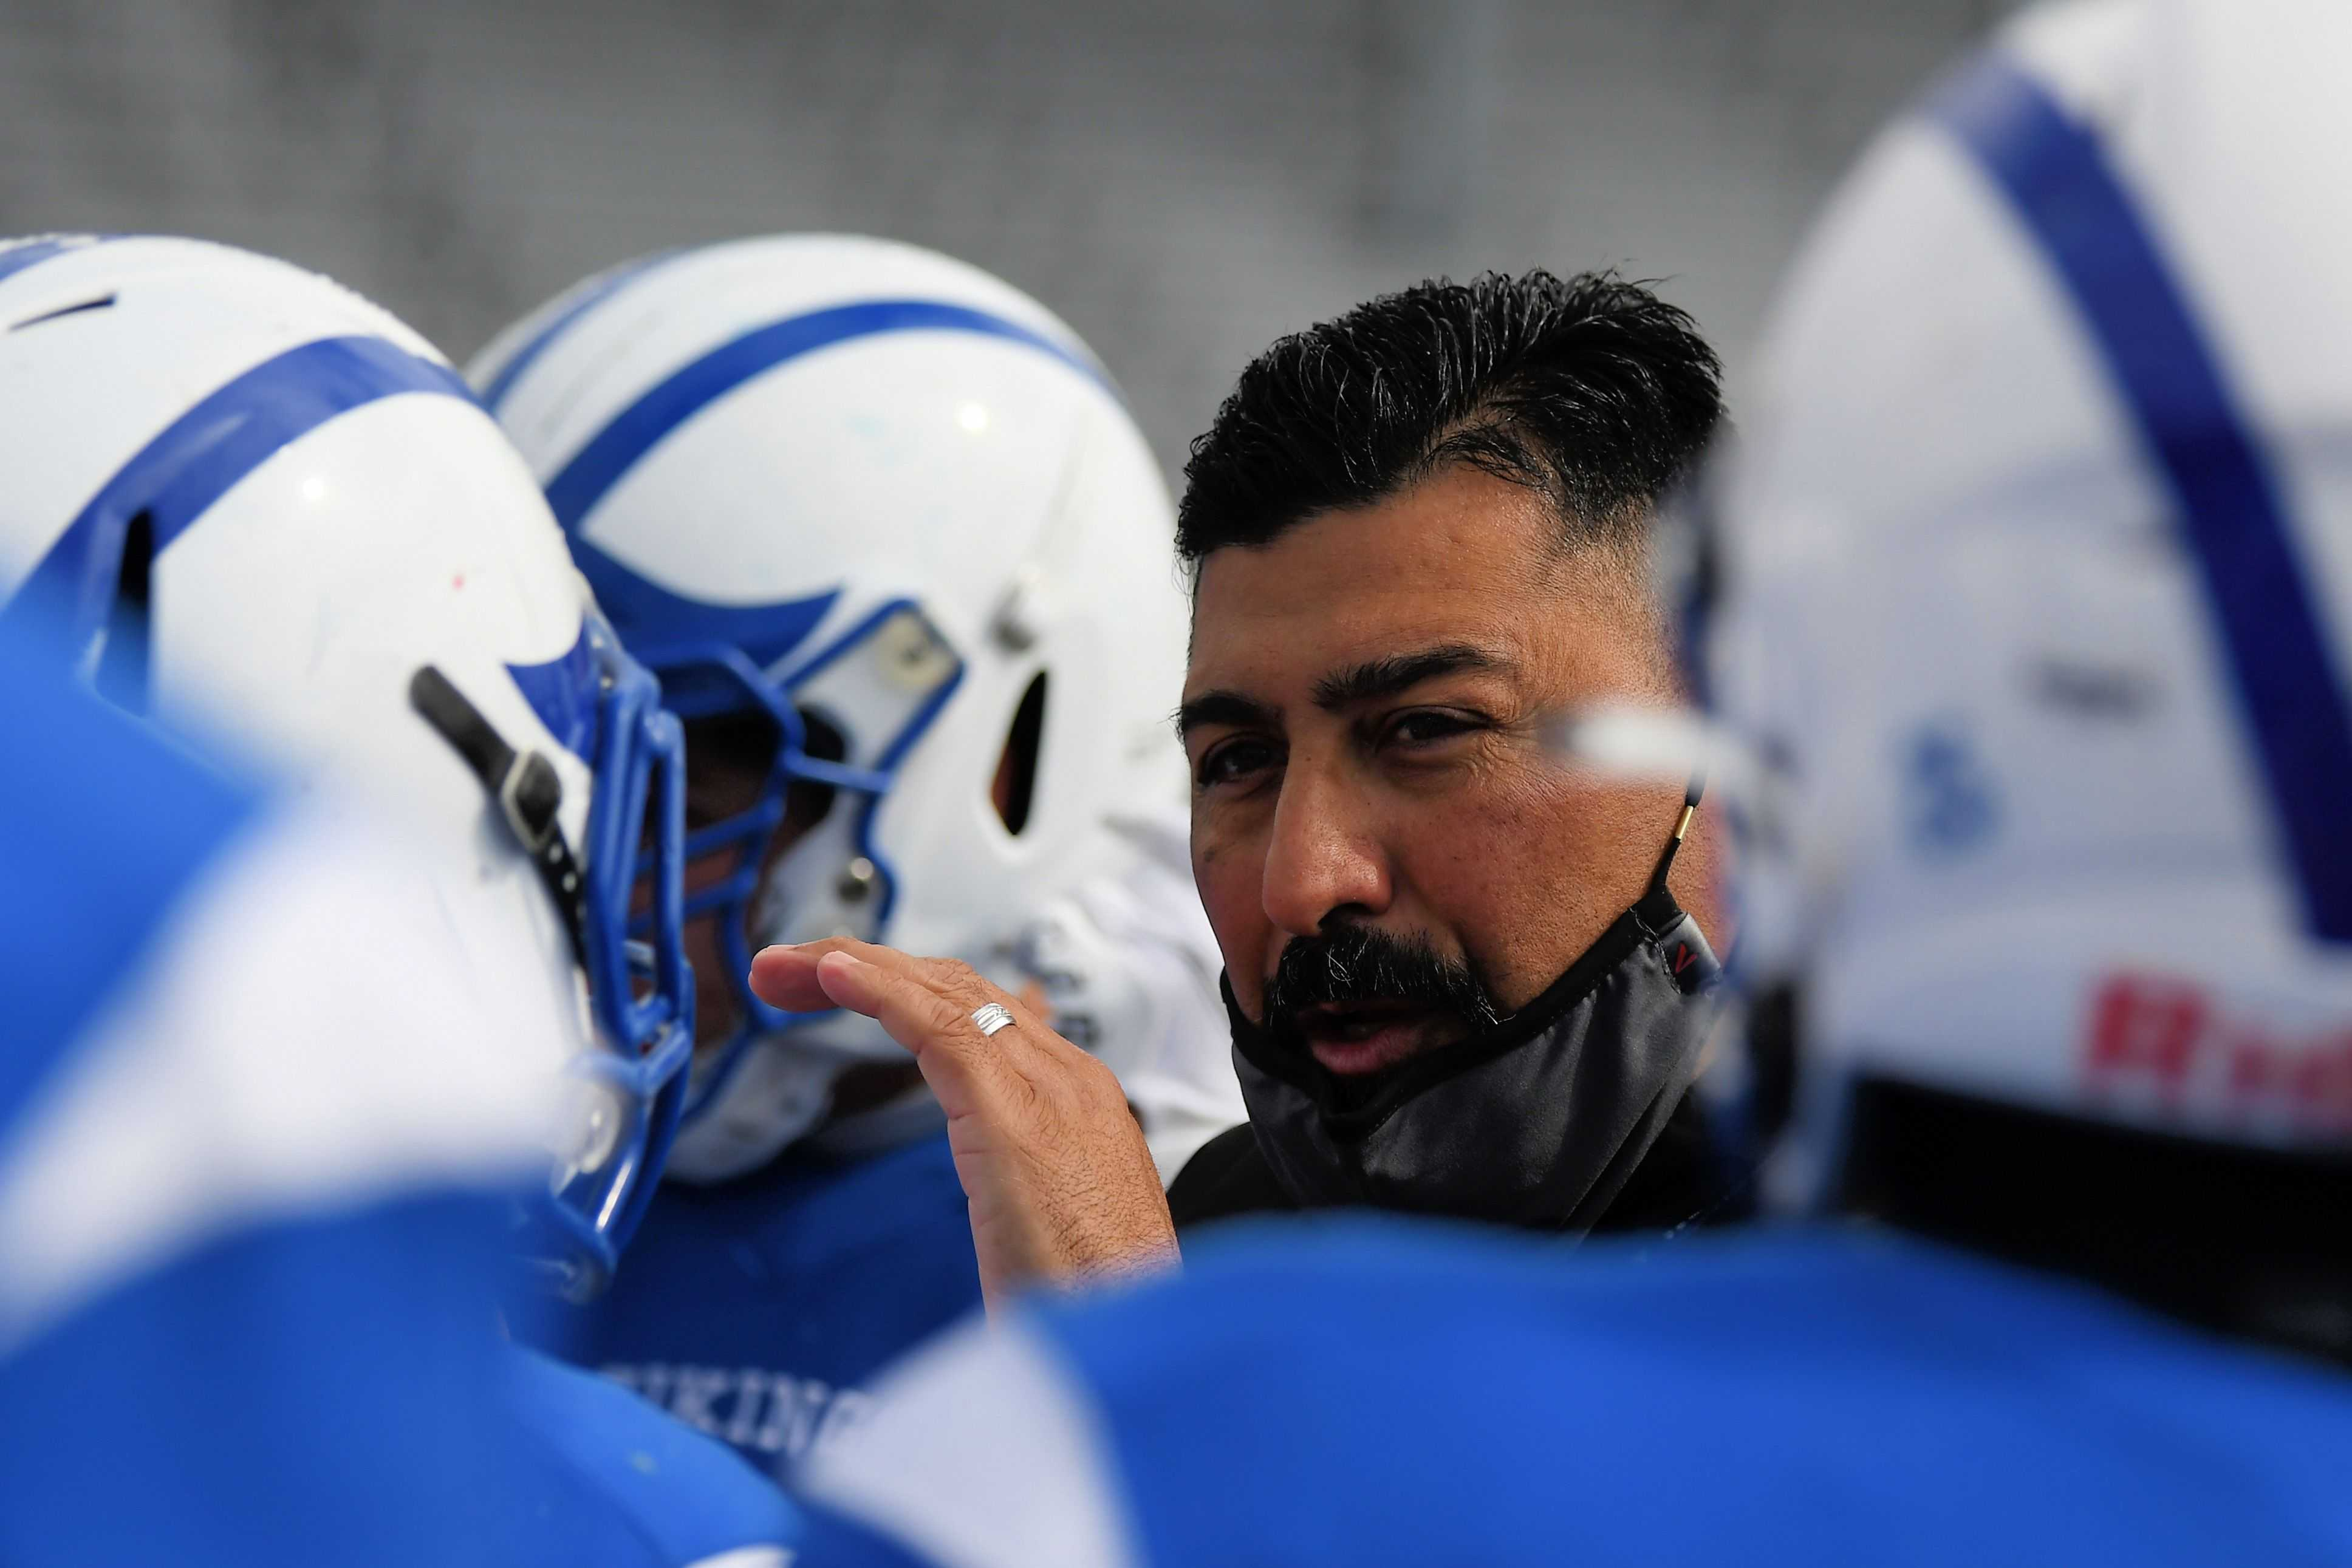 Mazama coach Vic Lease was inundated with messages after taking down 5A champ Thurston. (Leon Neuschwander/SBLive)